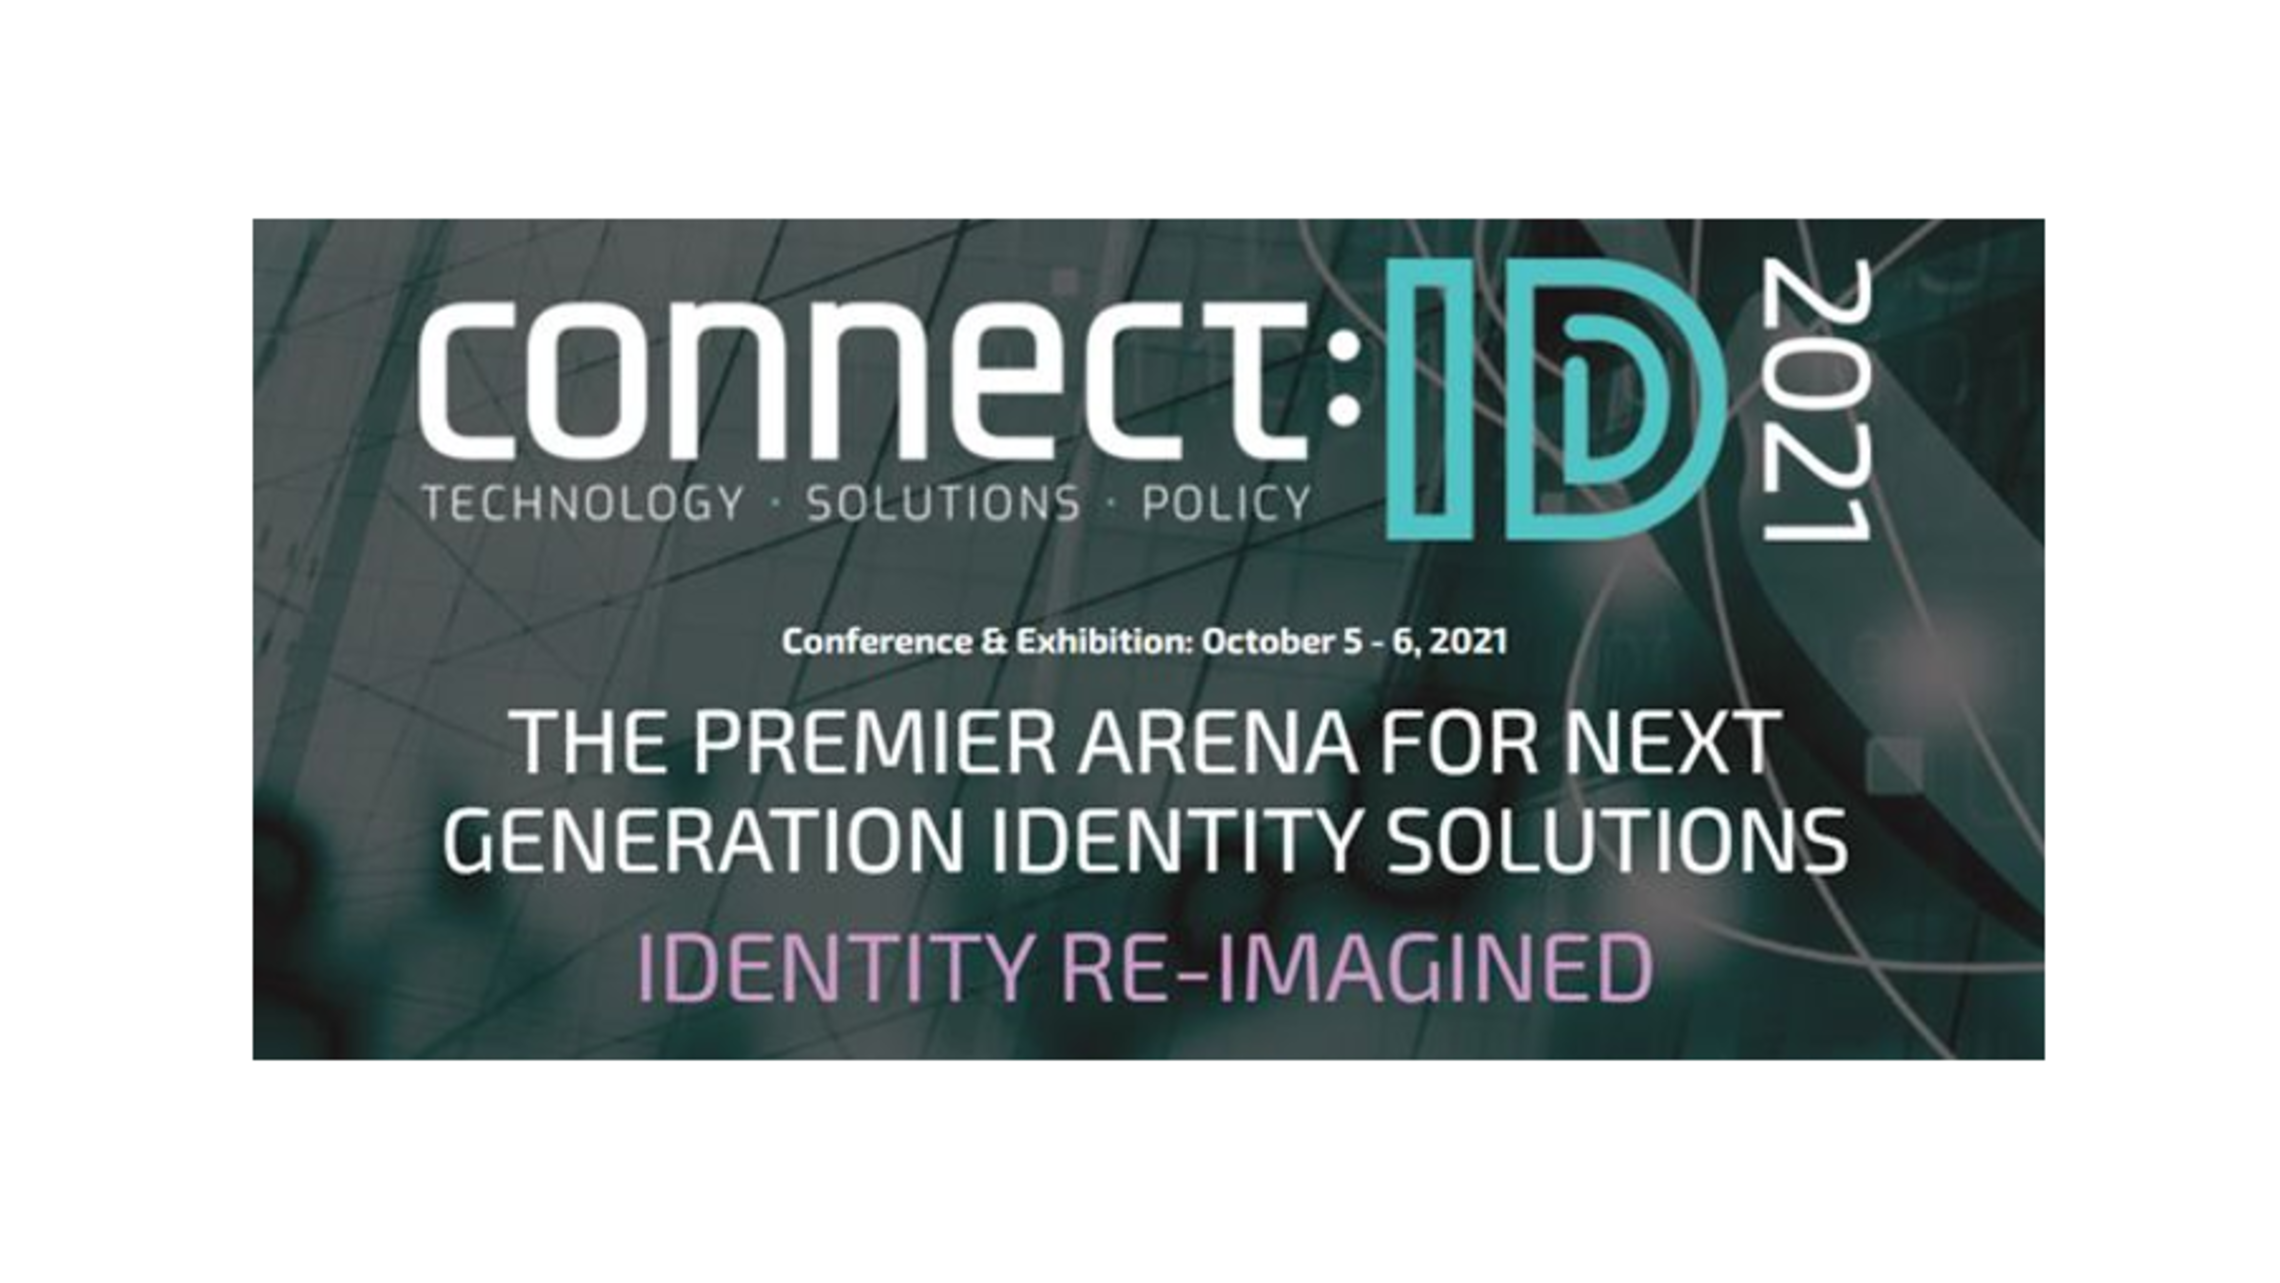 Connect Id 4